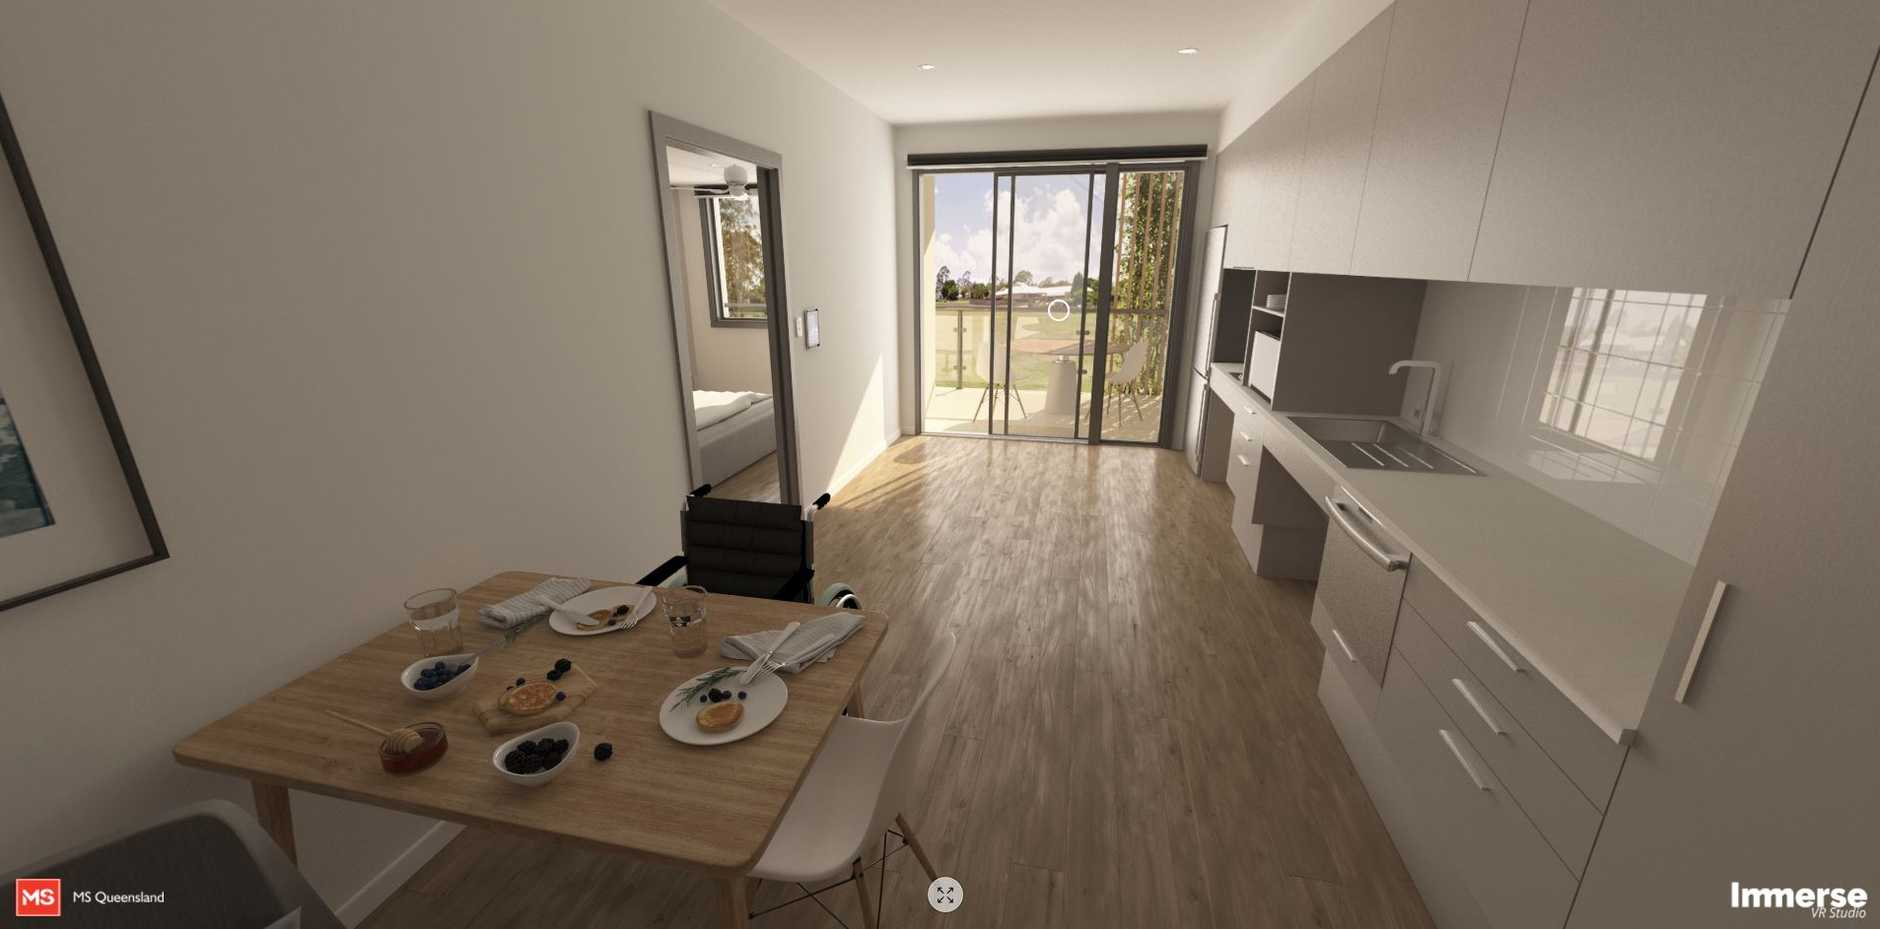 The WG Group are proud to support MS Queensland. Our virtual reality showcases how Project Dignity 120 apartments will change lives for people in desperate need and help solve the disability housing crisis.